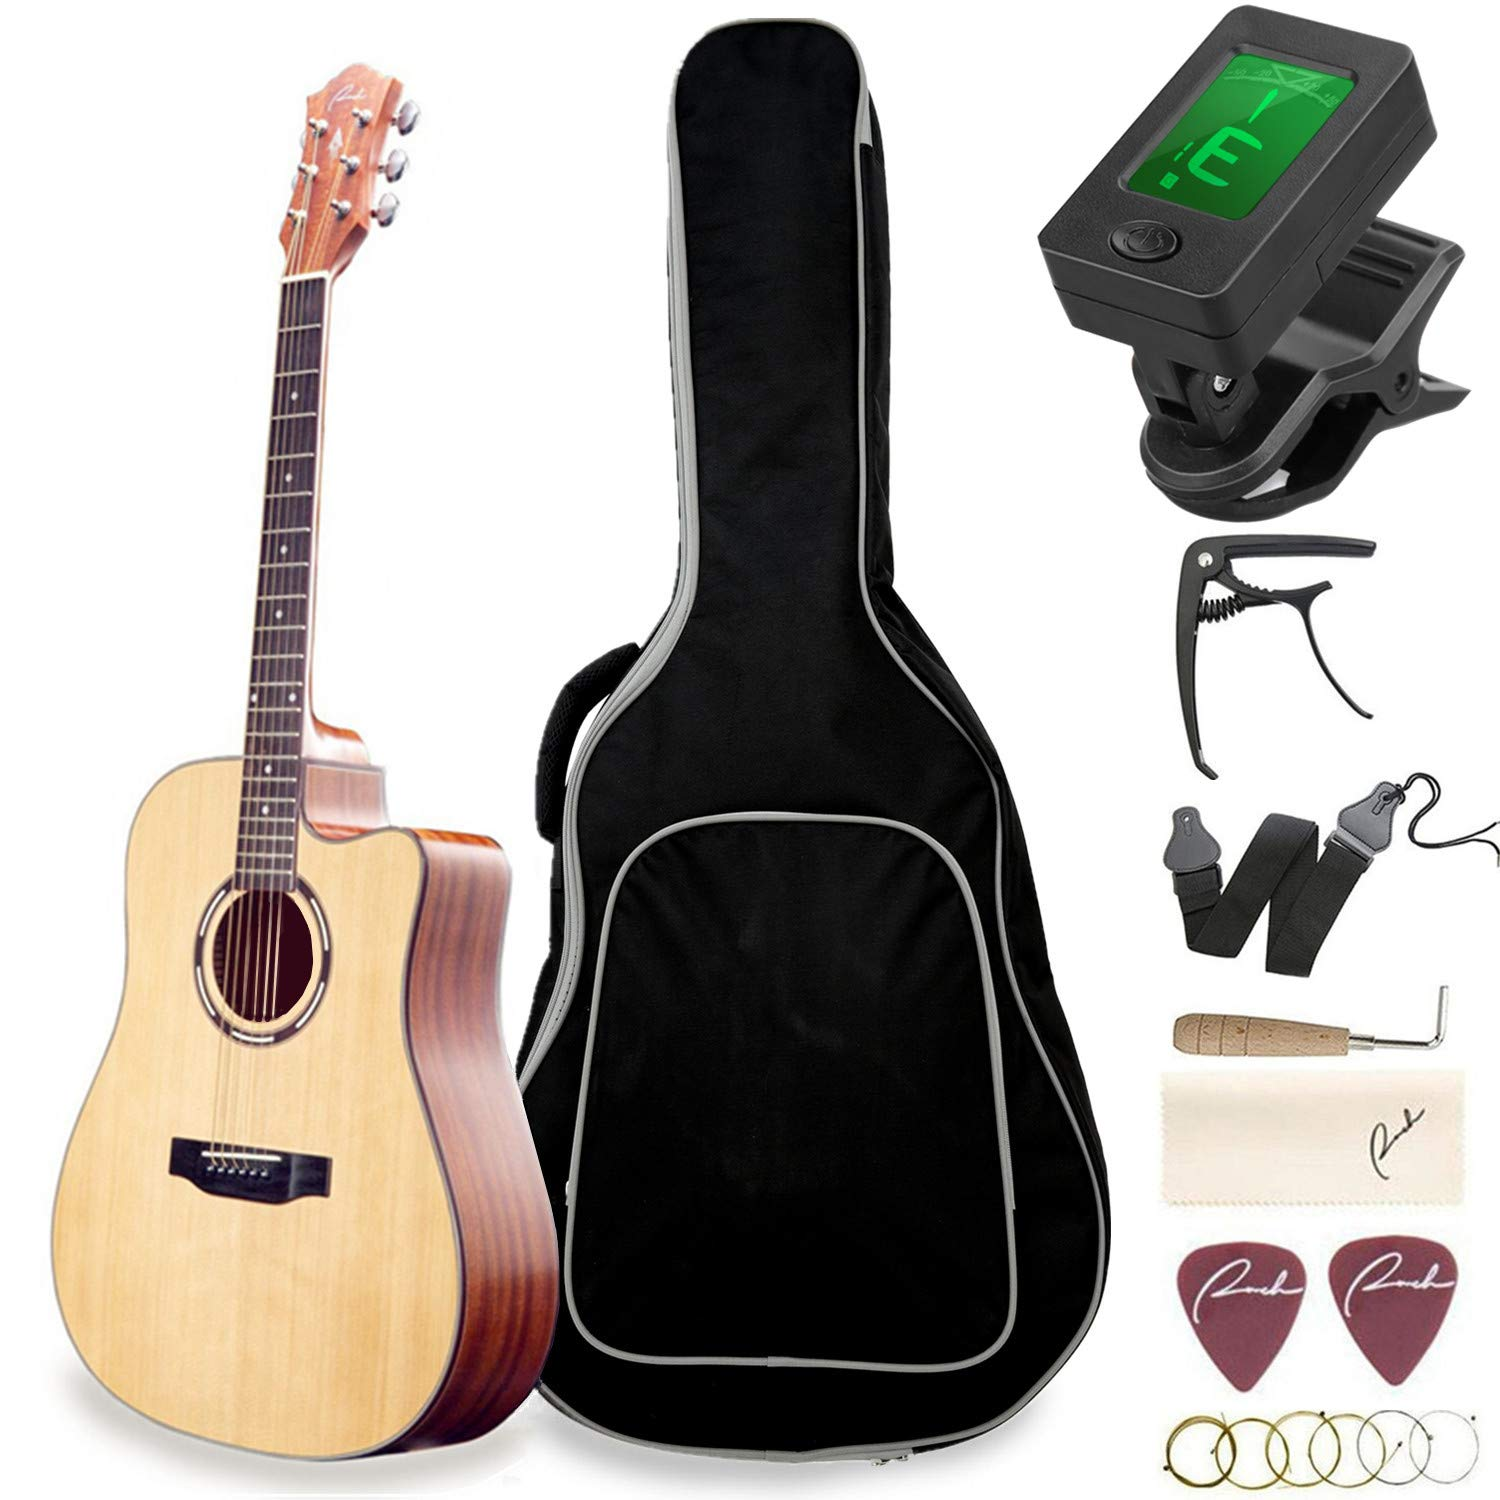 Beginner Acoustic Guitar Ranch 41'' Full Size Solid Wood Cutaway Beginners Steel String Guitars Kit Bundle with Gig Bag/Tuner/Capo/Strings/Strap/Picks Set Starter Guitar Pack for Adults (Dreadnought) by Ranch